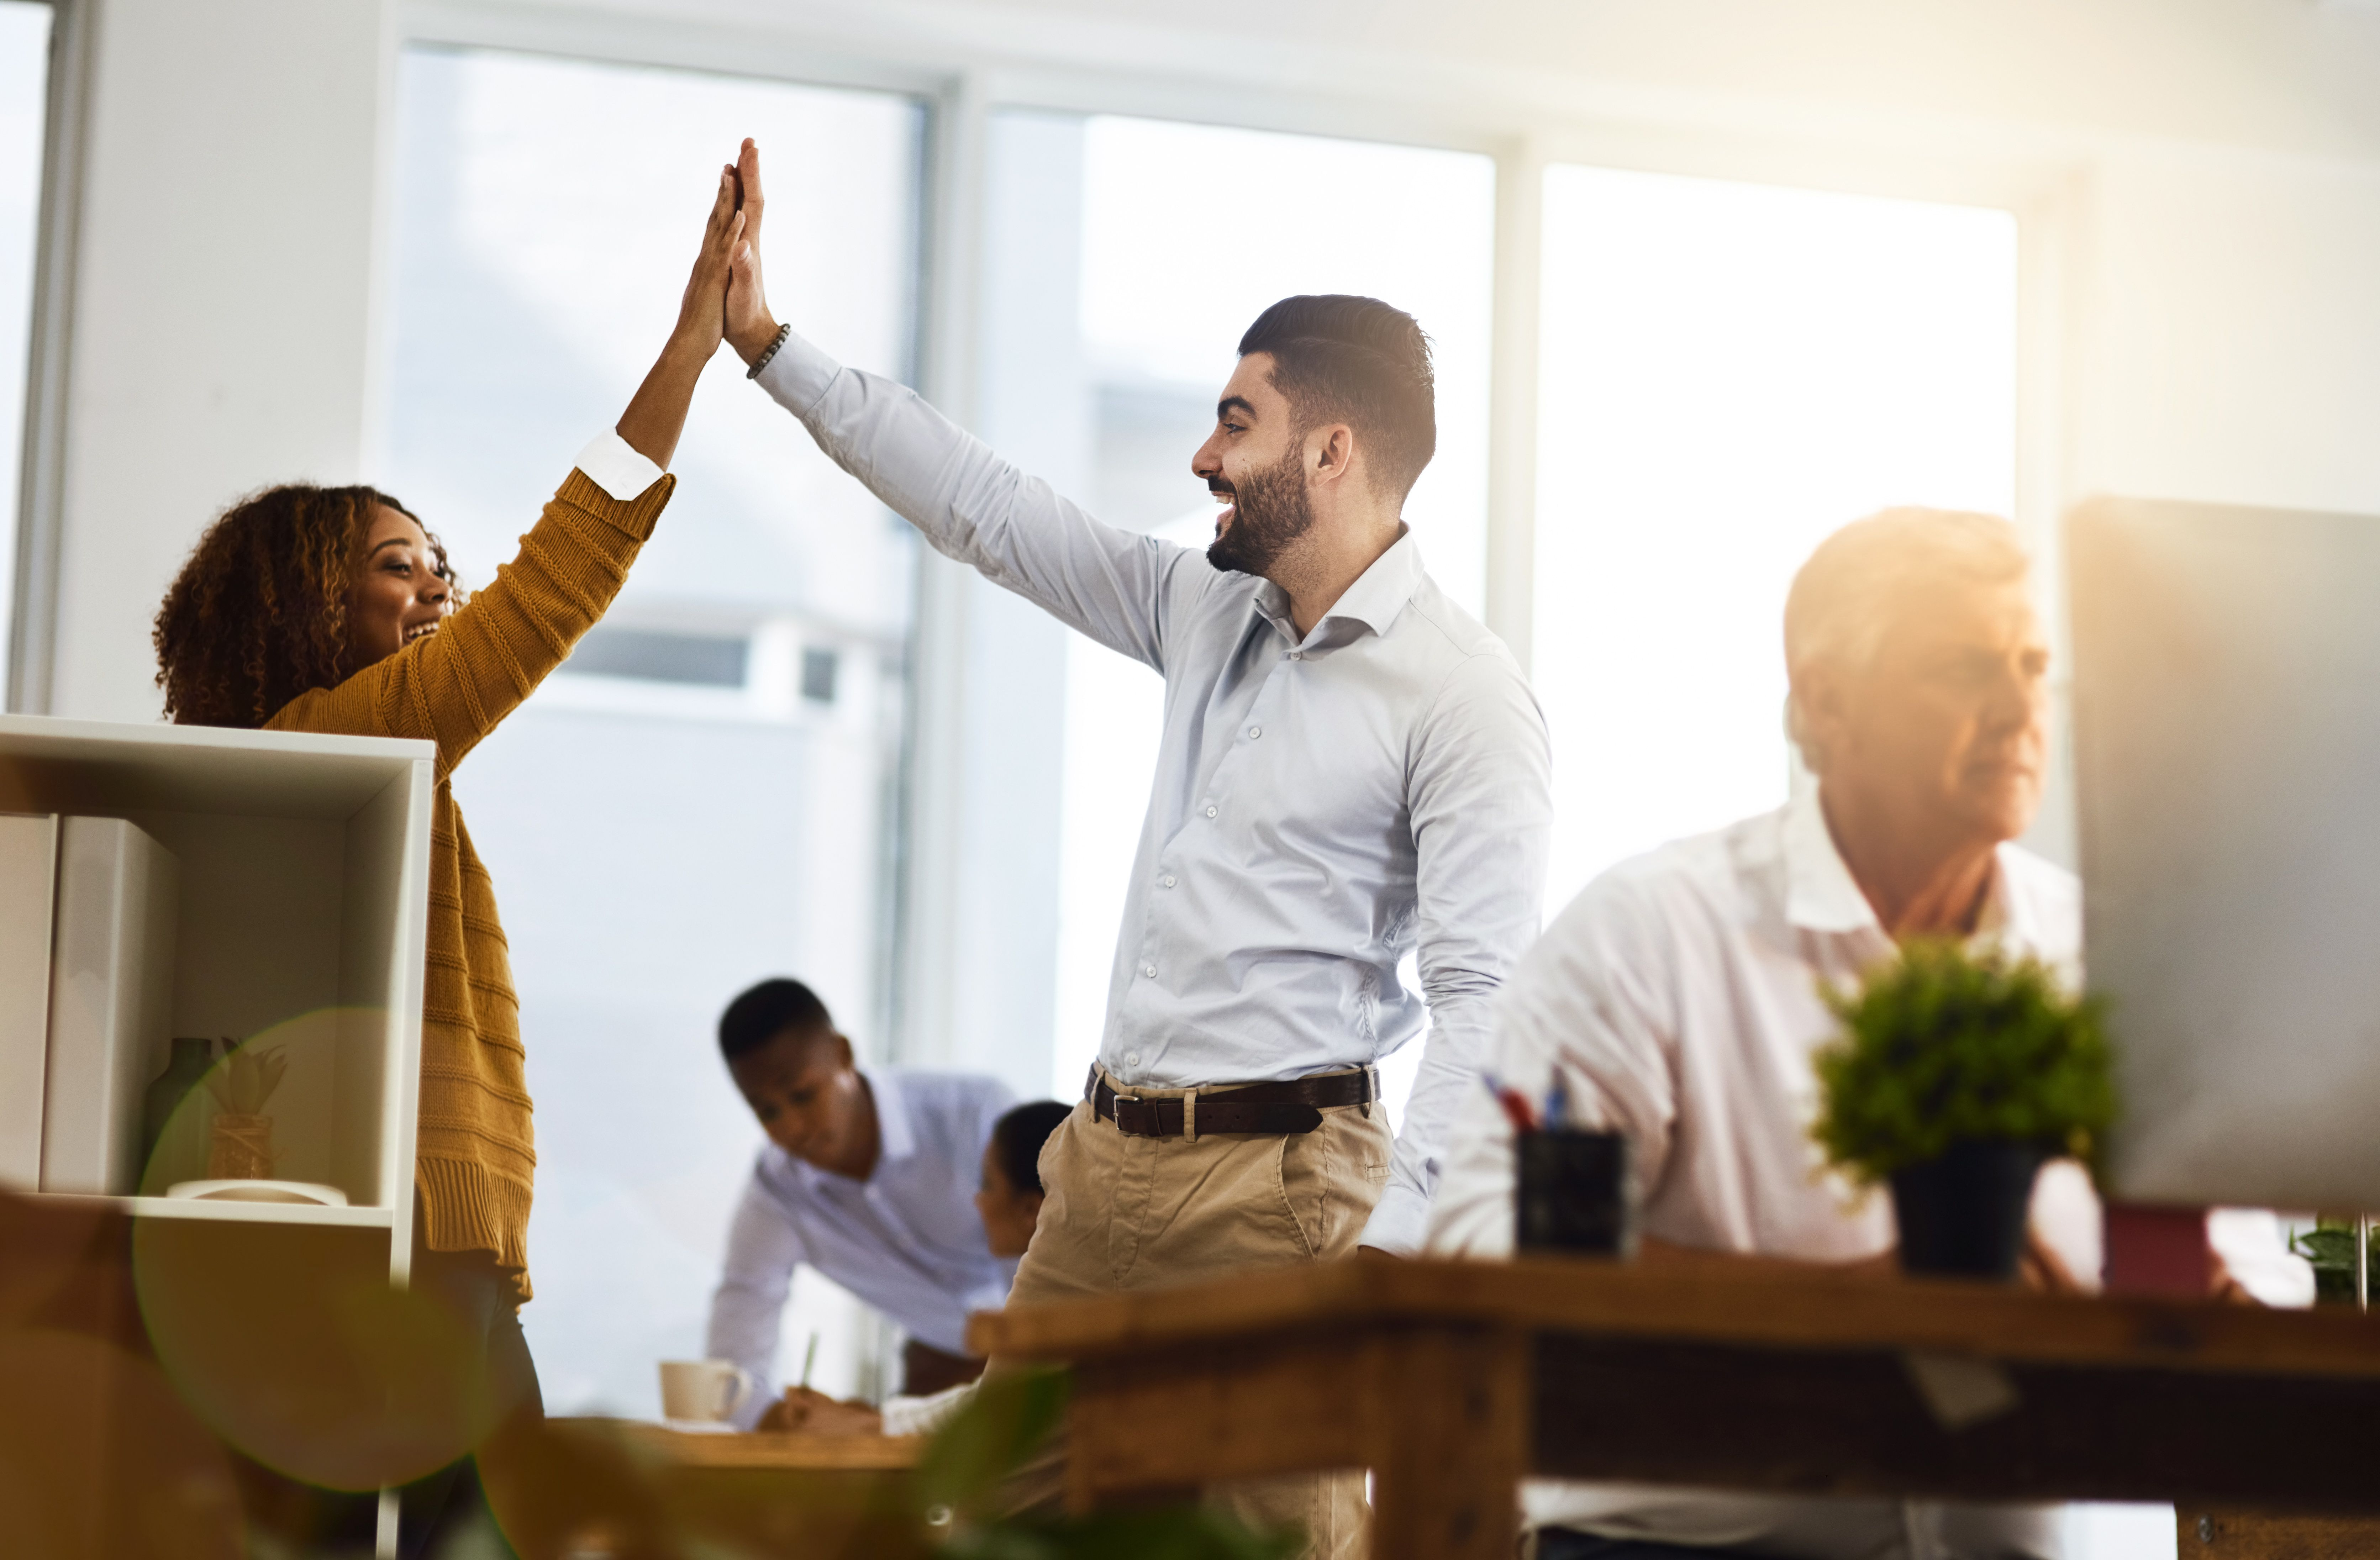 Inspirational Quotes For Business About Recognition